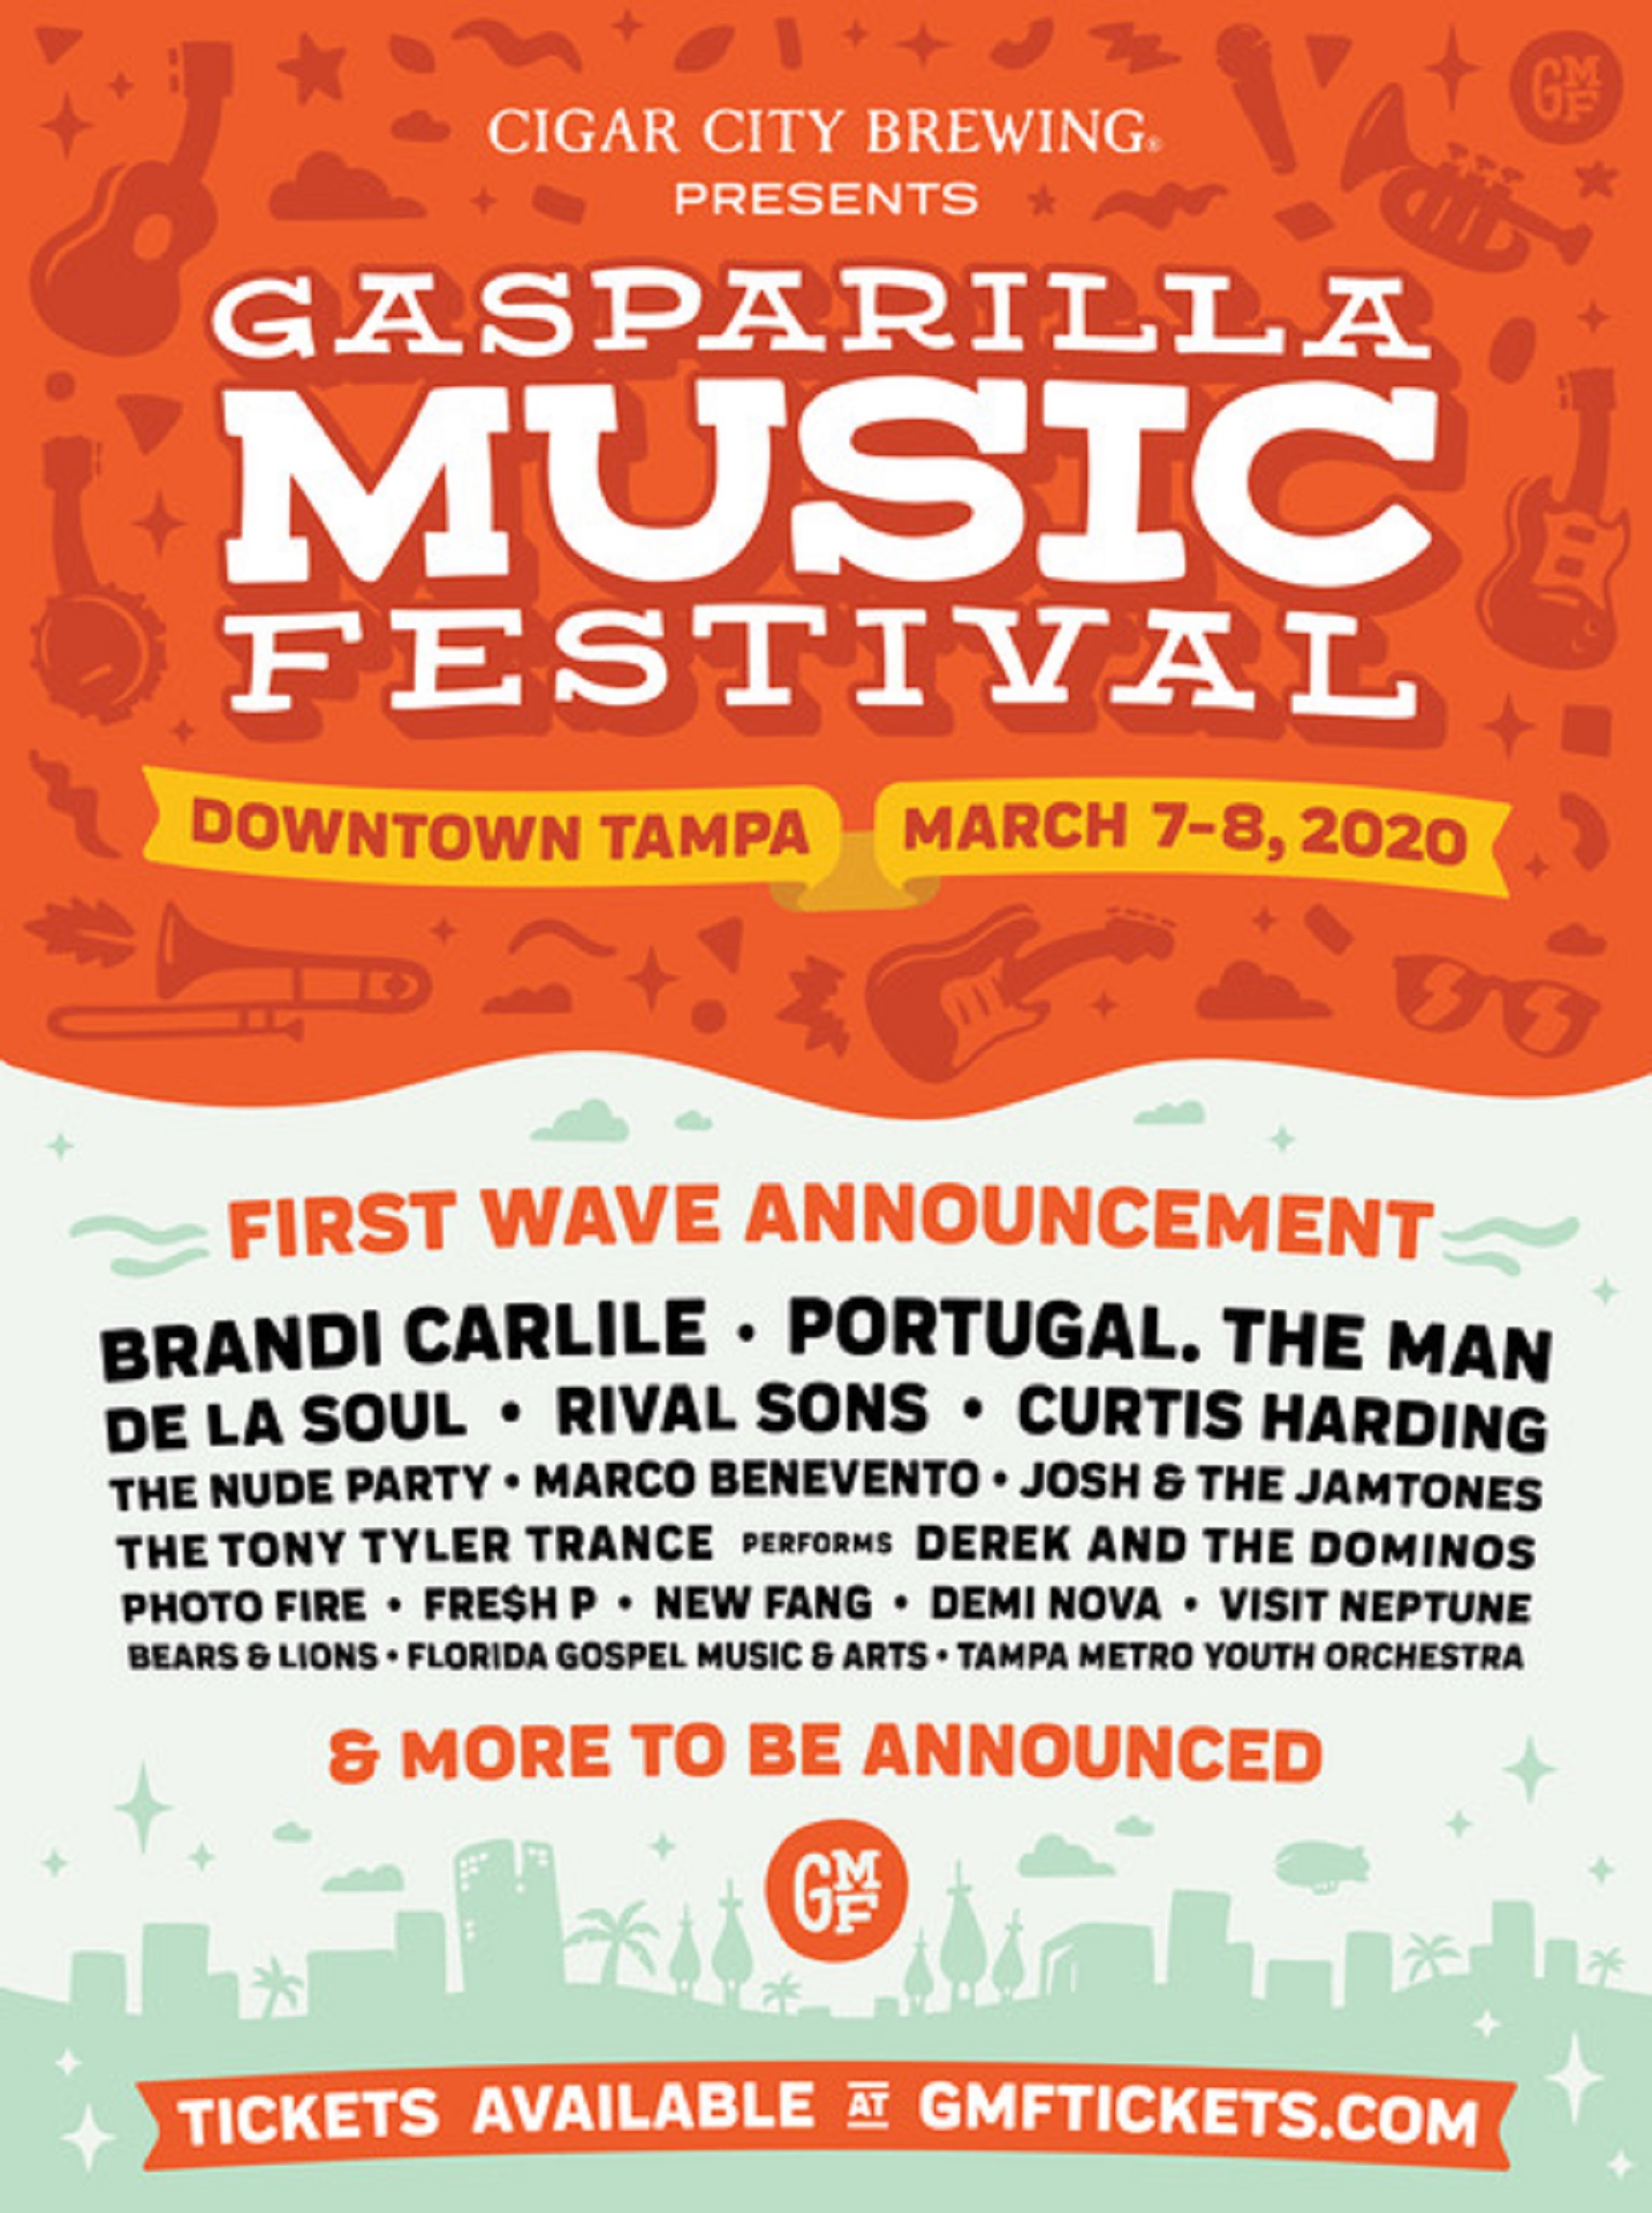 Gasparilla Music Festival 2020 Reveals First Wave of Bands